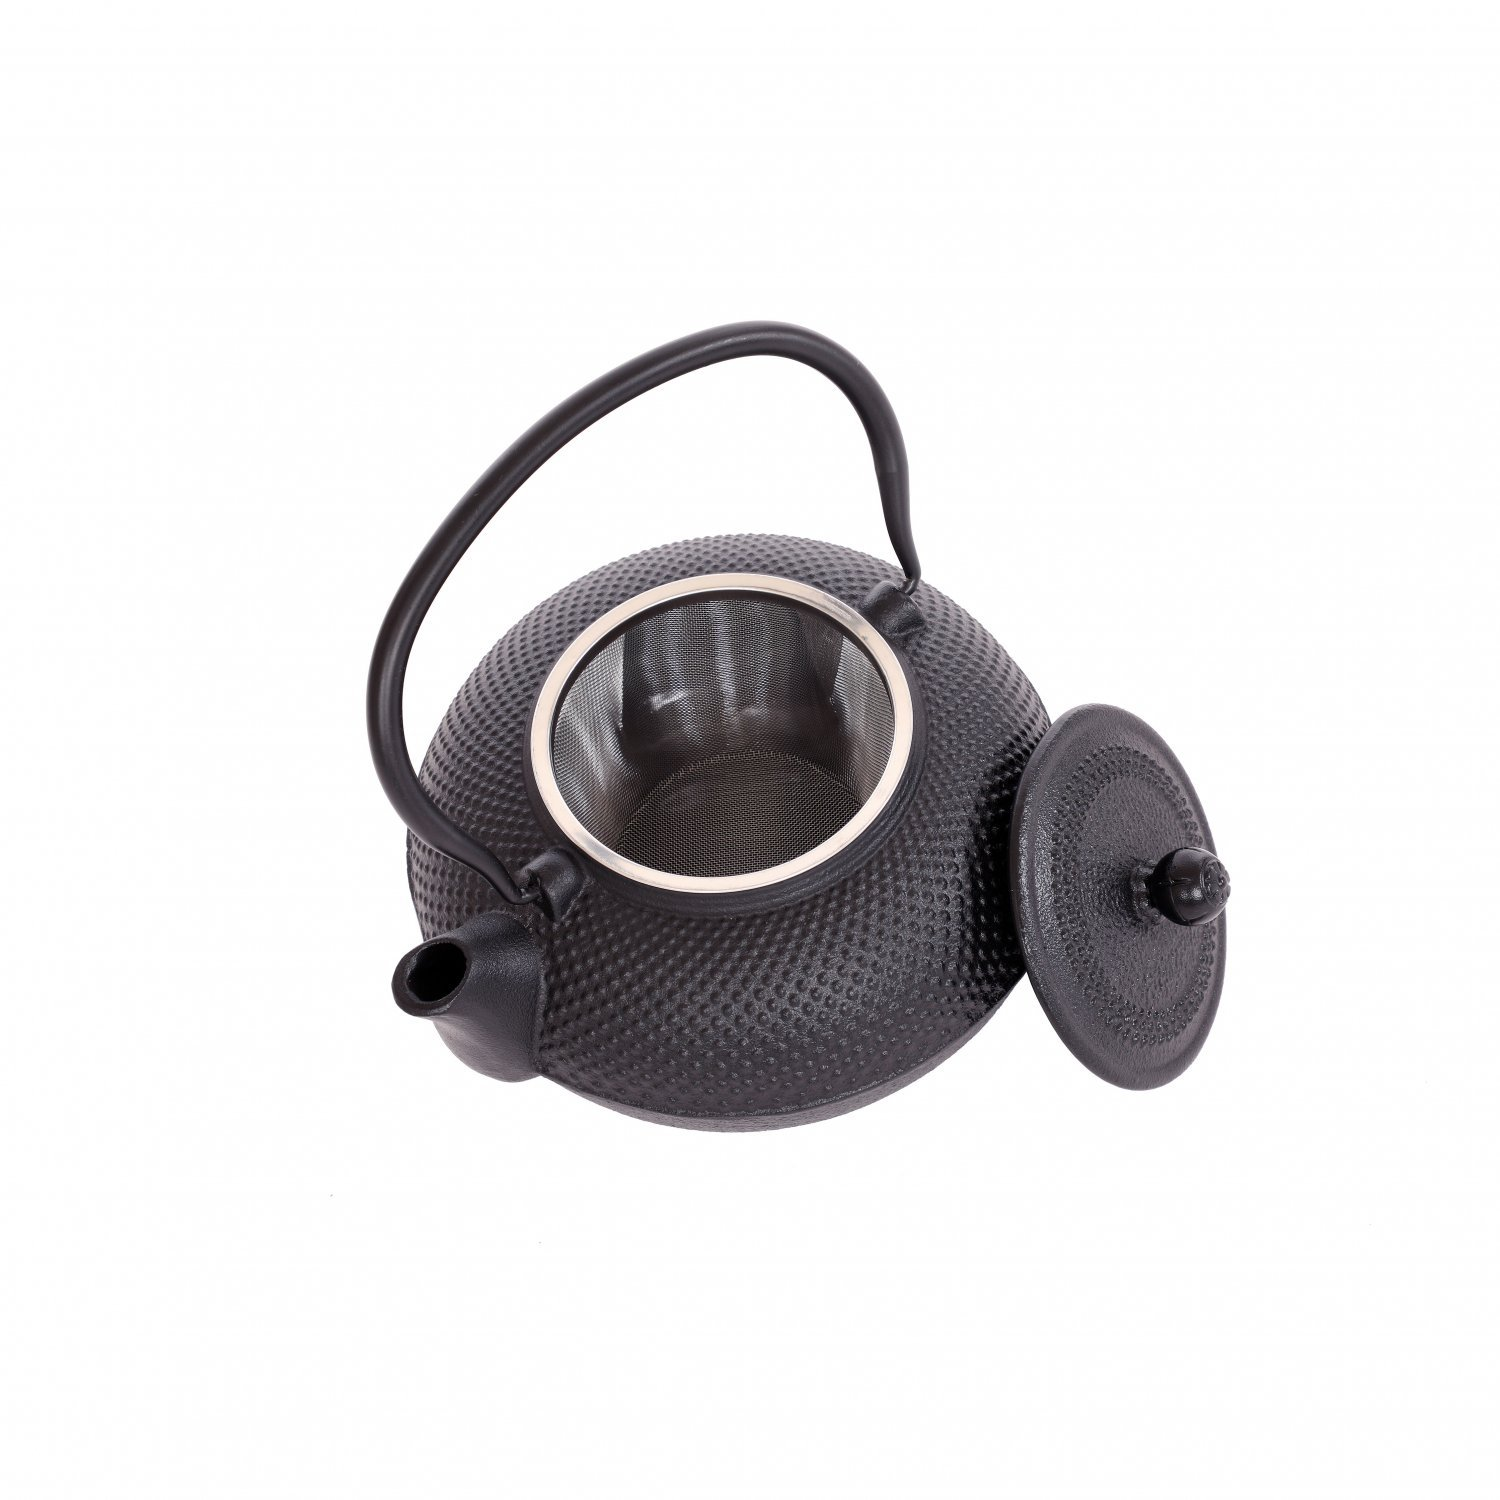 1.5L Japanese Style Cast Iron Hob Nail Teapot with Stainless Steel Infuser NEW